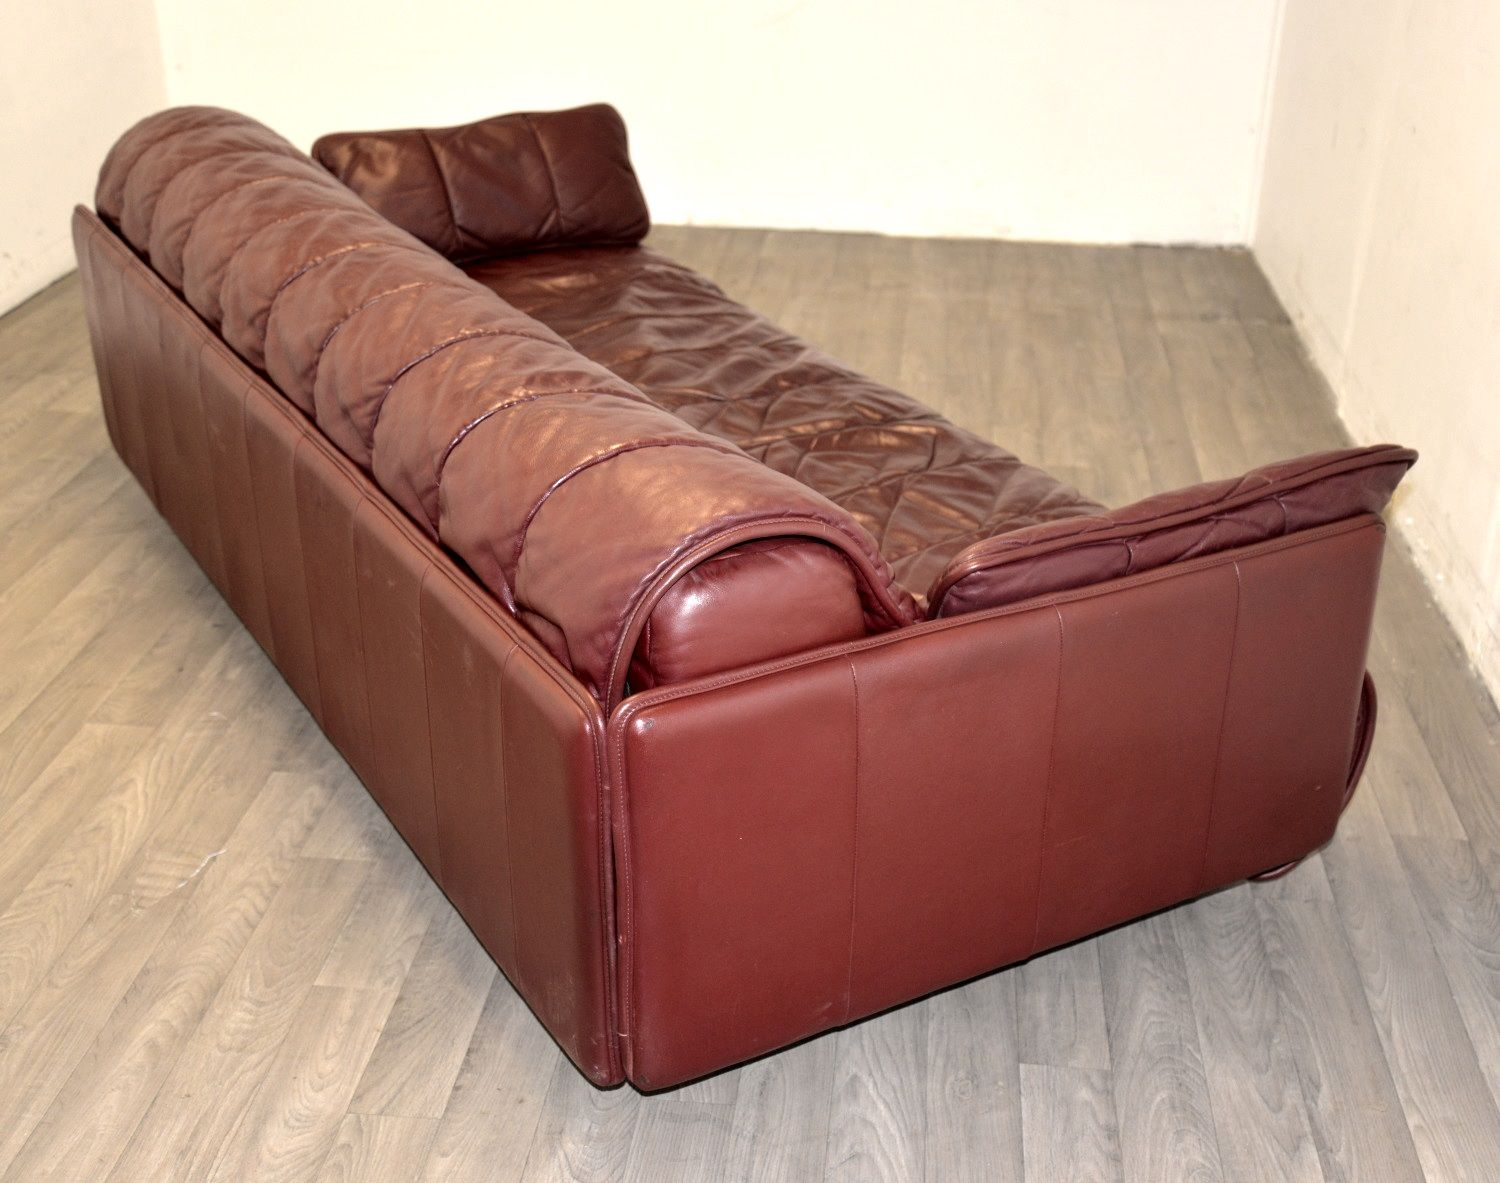 schweizer leder schlafsofa von de sede 1970er bei pamono kaufen. Black Bedroom Furniture Sets. Home Design Ideas